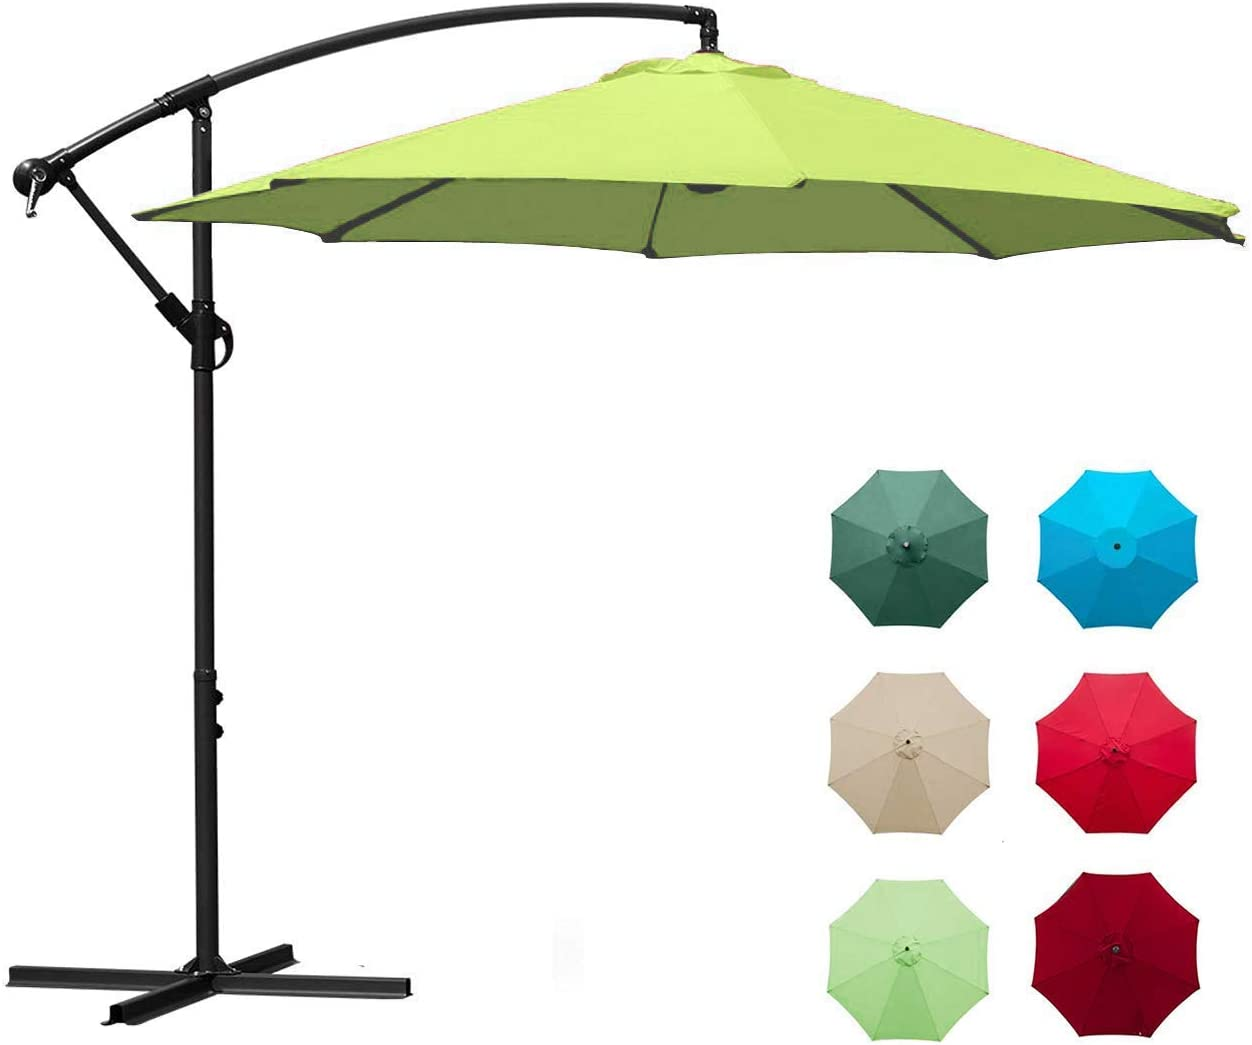 Aclumsy Offset Umbrella – 10Ft Cantilever Patio Hanging Umbrella, Easy Tilt Adjustment, Polyester Shade, 8 Ribs for Backyard, Poolside, Lawn and Garden – Apple Green